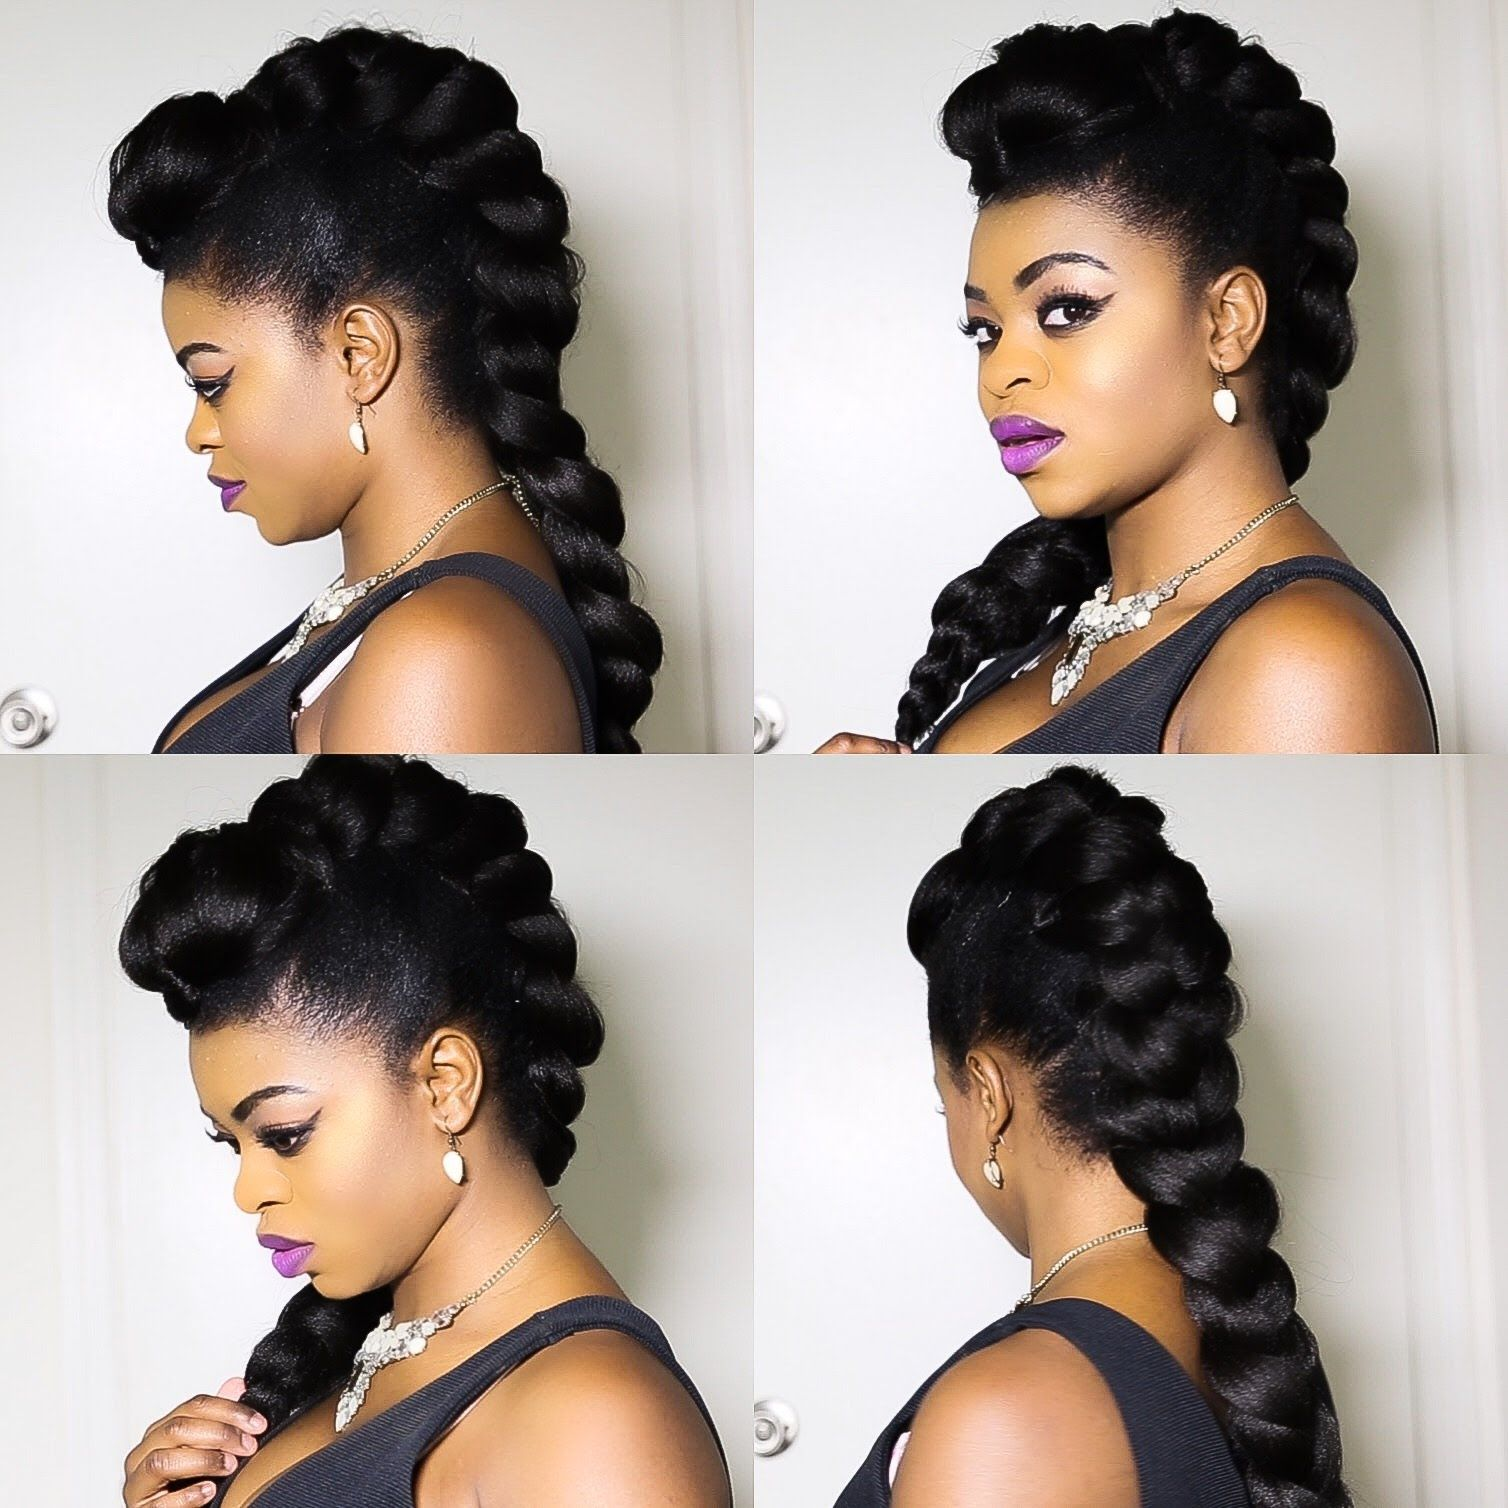 African naturalistas how to style your natural hair mohawk - Faux Braided Mohawk On Natural Hair